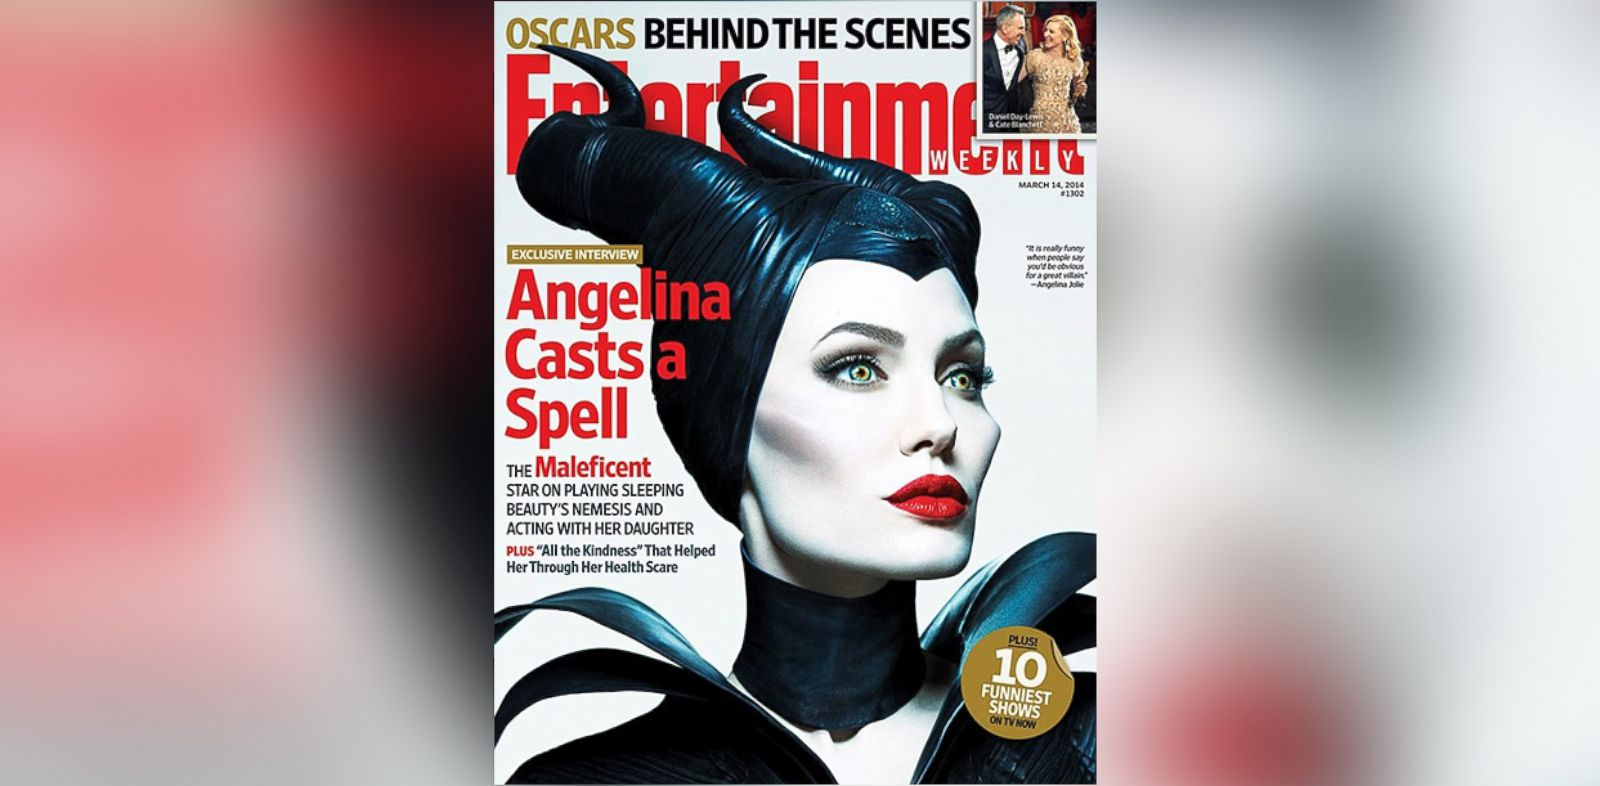 PHOTO: Angelina Jolie, on the cover of the March 14, 2014 issue of Entertainment Weekly.